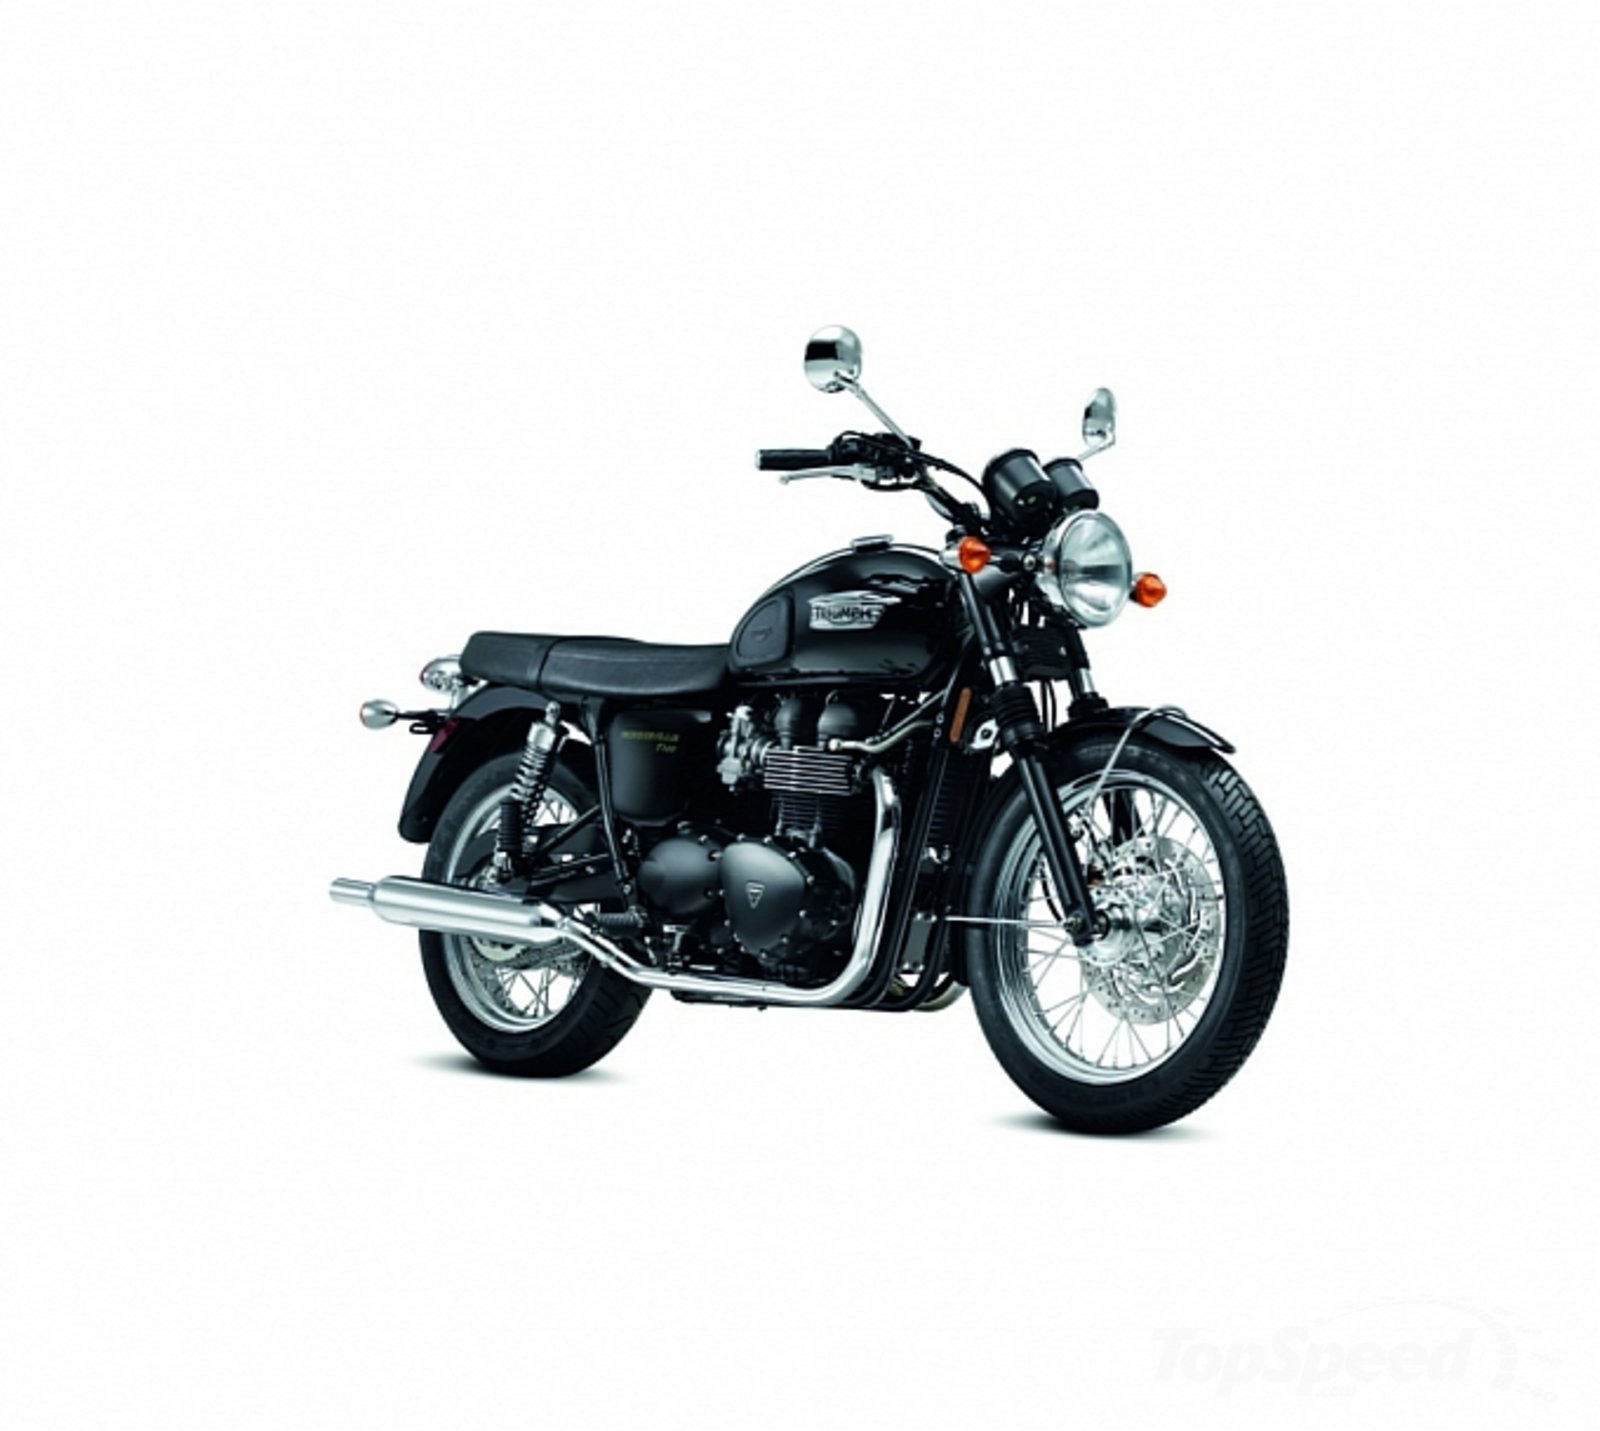 Triumph Bonneville Reviews Specs Prices Photos And Videos Top Speed. 2011 Triumph Bonneville T100. Wiring. Classic Triumph Motorcycle Engine Diagram At Scoala.co